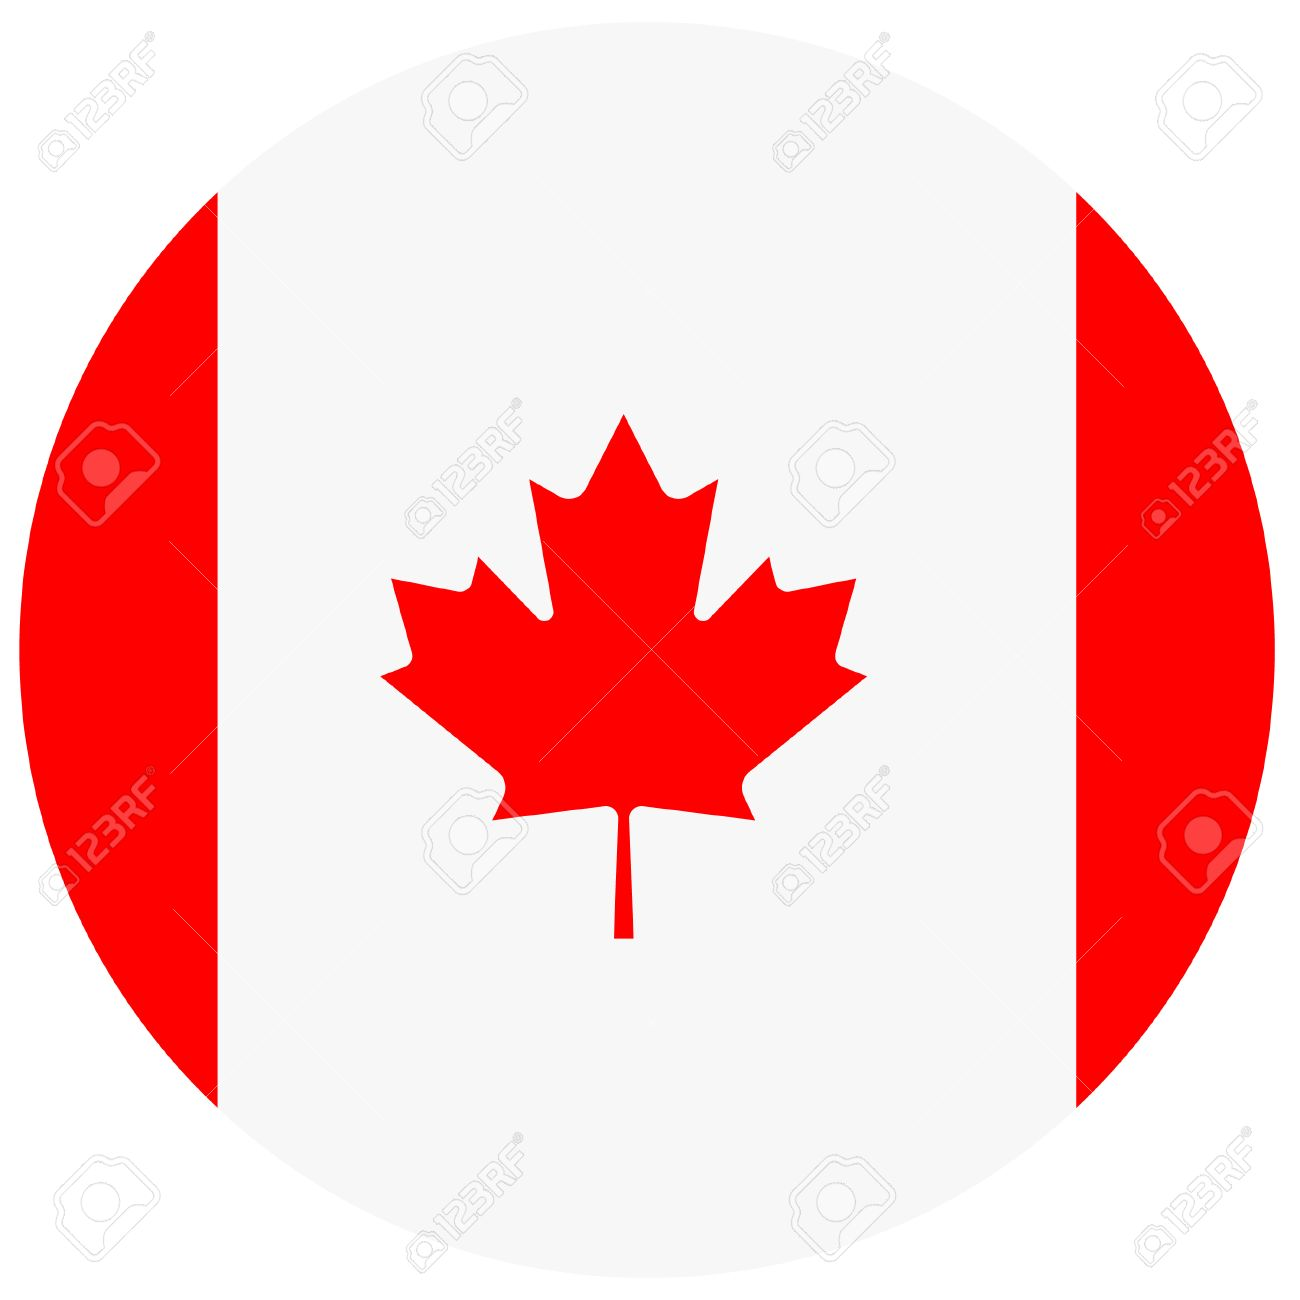 vector illustration of canada flag round national flag of canada rh 123rf com canadian flag vector eps canadian flag vector eps